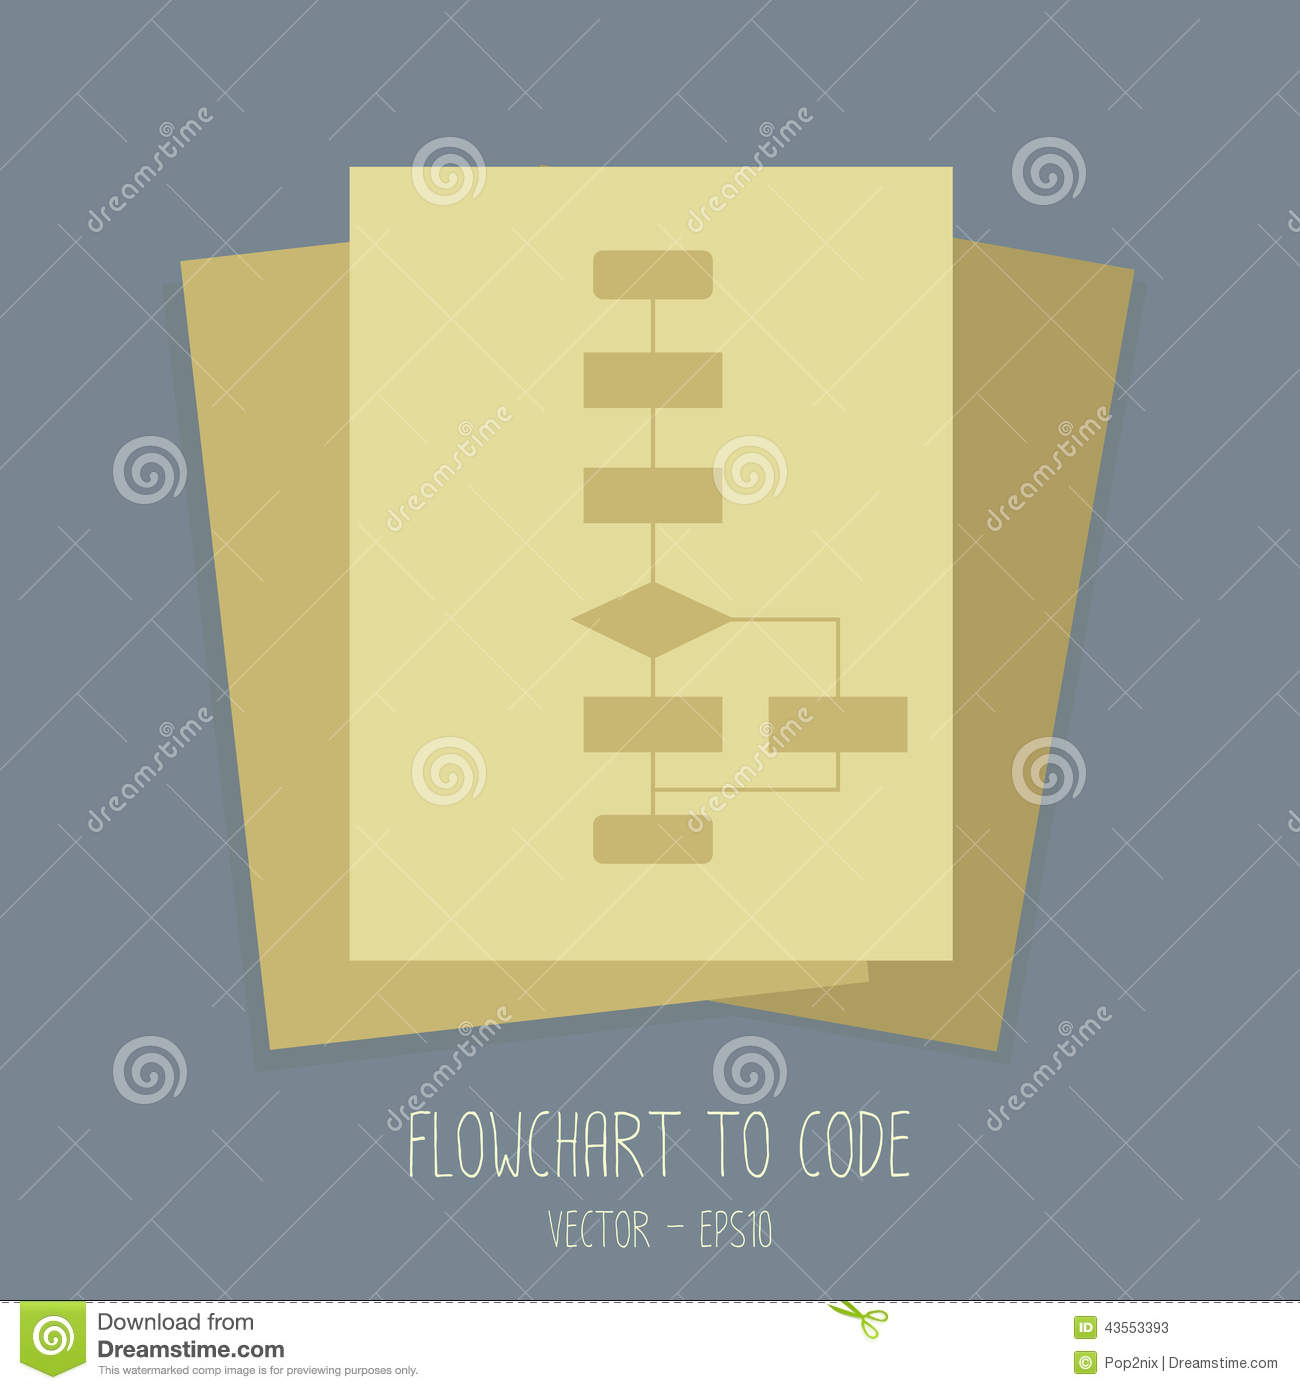 Flowchart to coding for programmer and software developer.